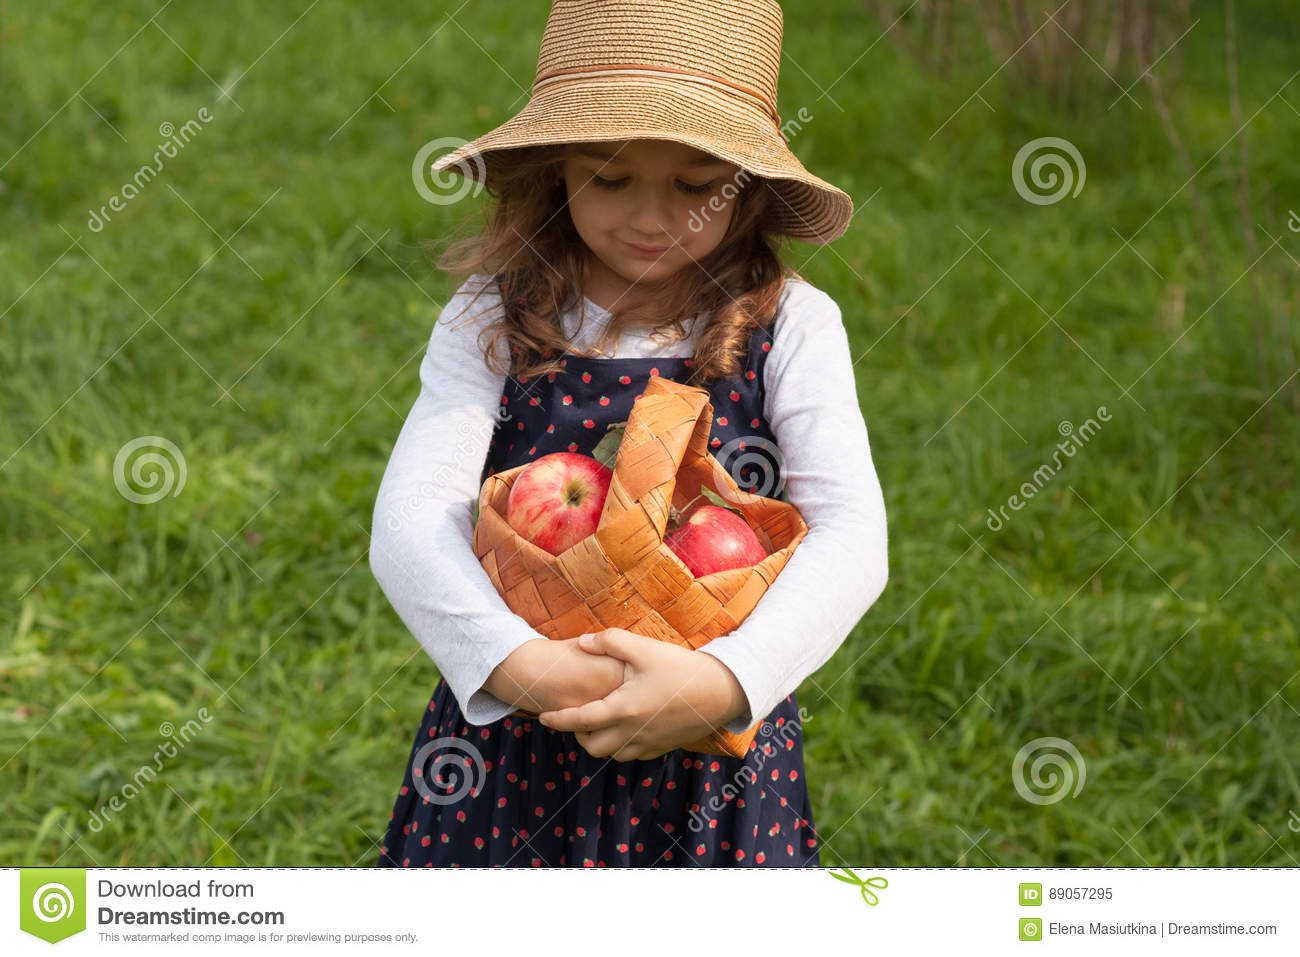 Little girl with basket of apples royalty free stock photo for Gardening tools for 6 year old